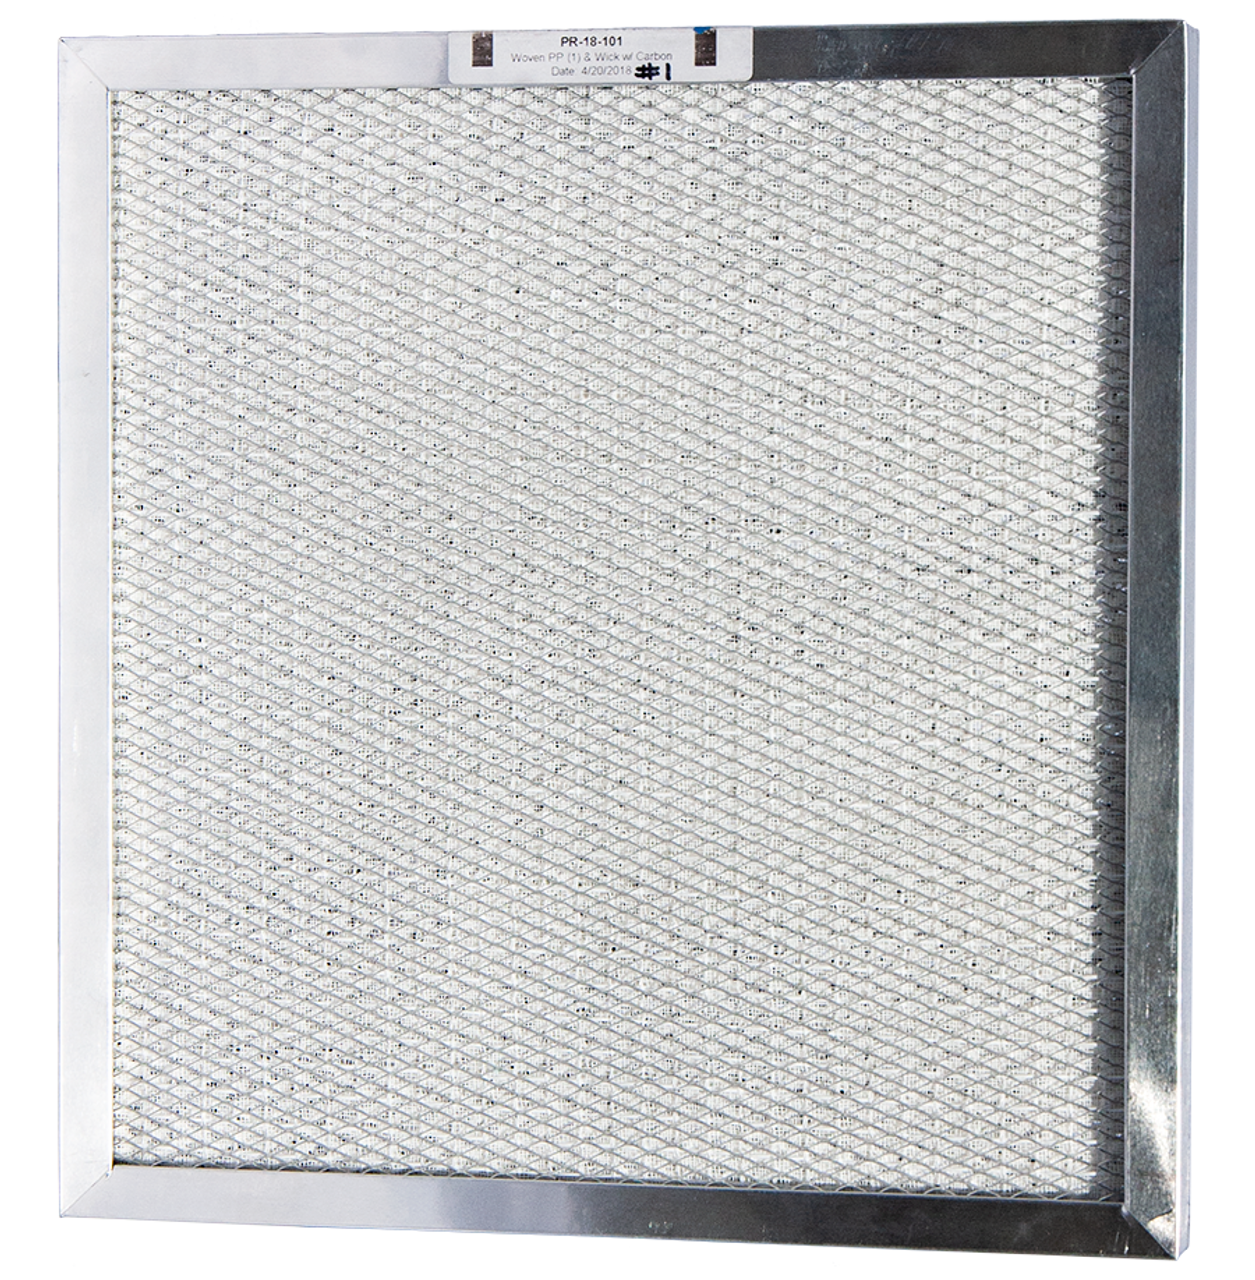 Dri‑Eaz 4‑PRO Four‑Stage Air Filter for LGR7000 & DrizAir 1200, REVOLUTION and EVOLUTION (3 PK)